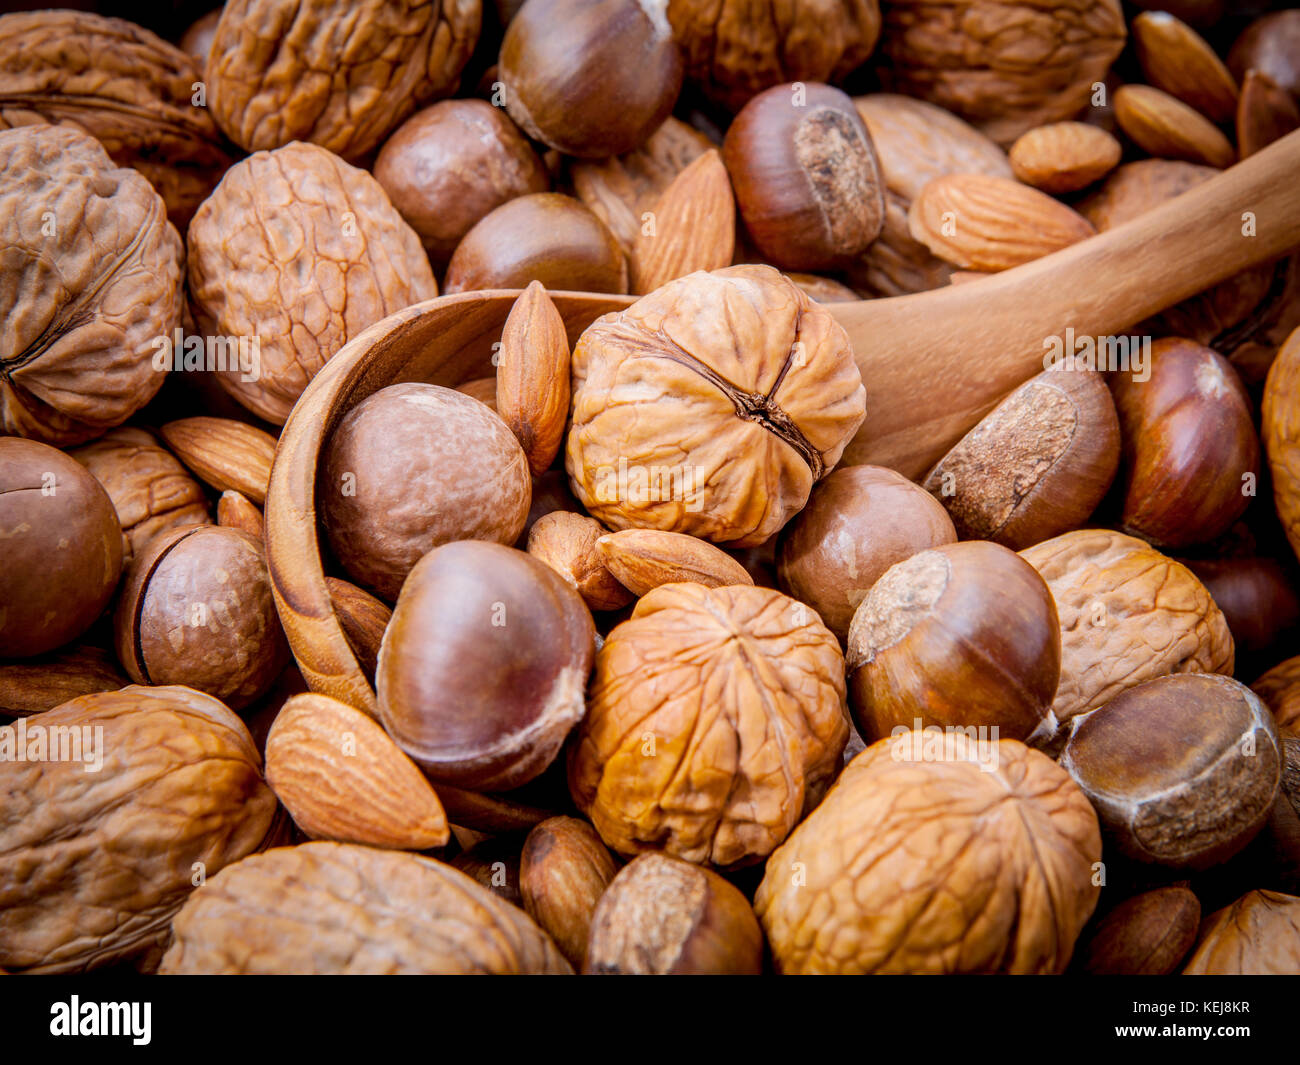 Background with different kinds of nuts  walnuts kernels ,macadamia,hazelnut, and almond with wooden spoon. Selective - Stock Image